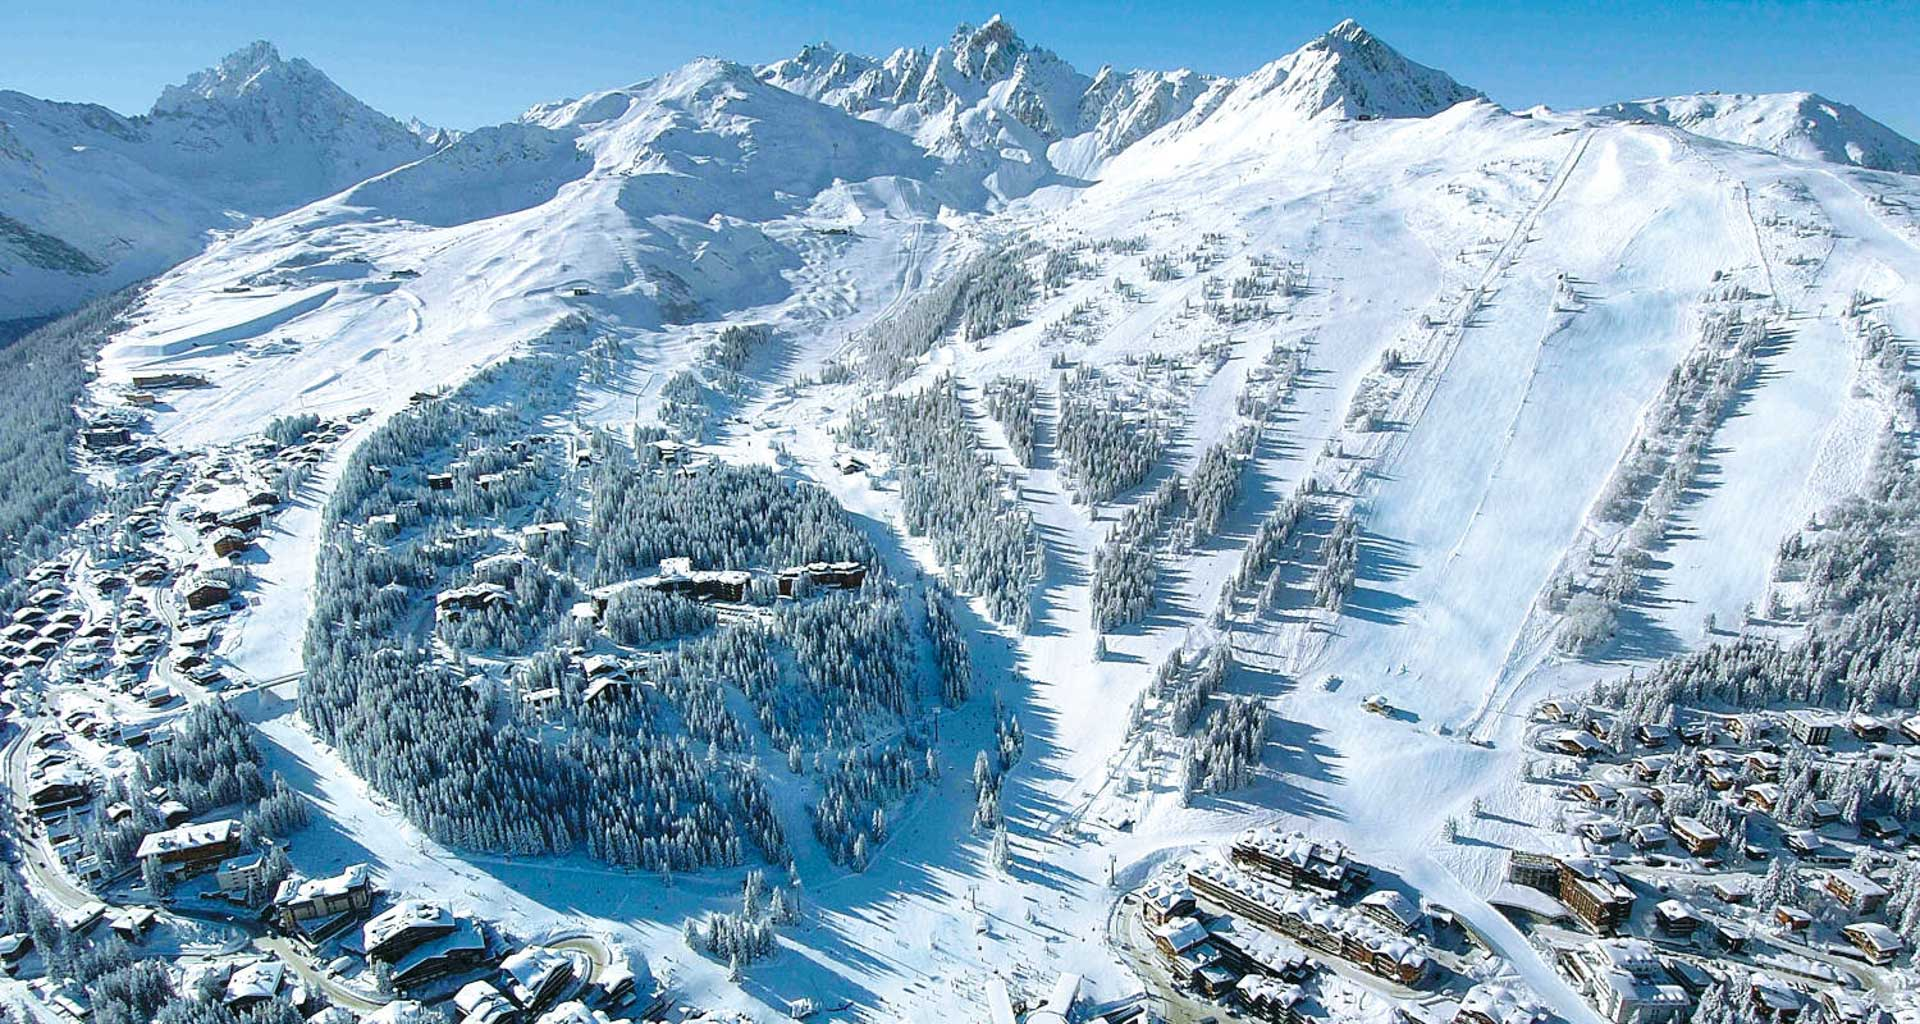 The village of Courchevel sits on the snowfront and in the trees underneath the beautifully groomed runs of the mountains above.